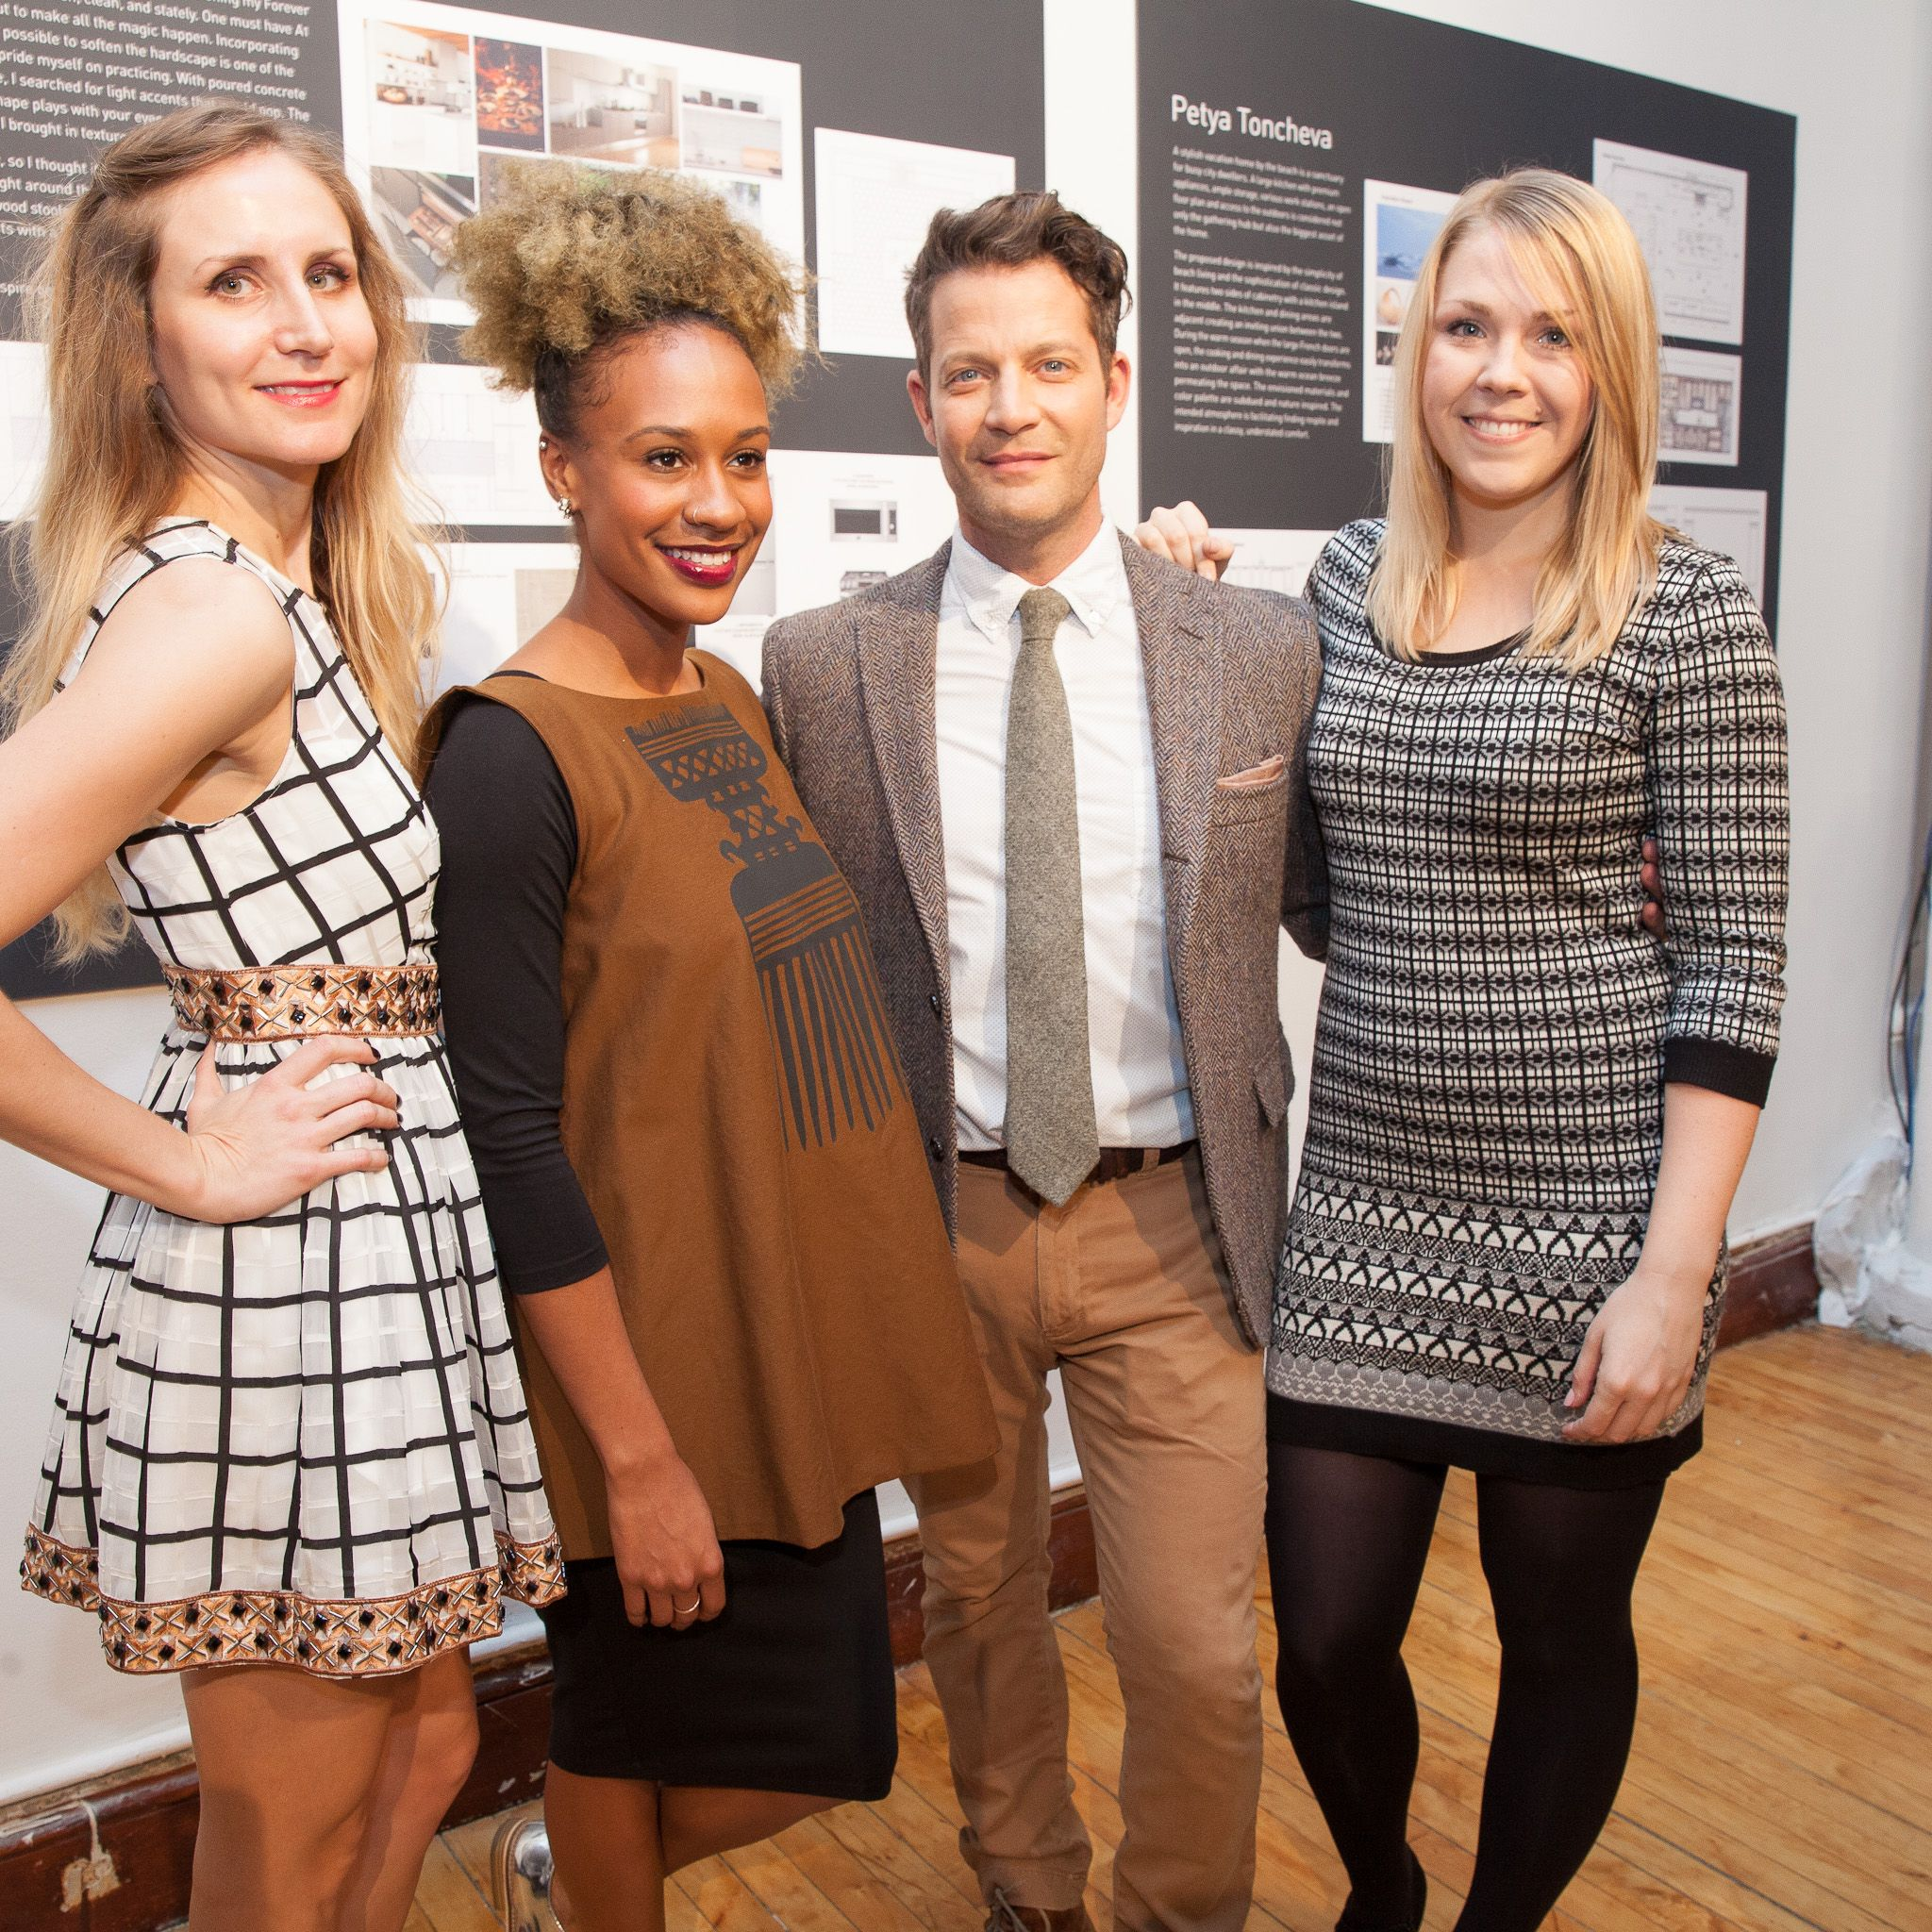 """<p>""""I like when a kitchen feels like an extension of the home,"""" says LG Studio's Artistic Advisor Nate Berkus, who judged the LG Studio and the ASID's Forever Kitchen design contest and selected a kitchen by Petya Toncheva (left) as the winner. Toncheva's featured a floor-to-ceiling pantry sprinkled with vases and books—proof that the kitchen isn't just for cooking. </p><p>Runners-up Courtney Robinson (middle) and Alex Sobolewski (right) were also honored.</p>"""